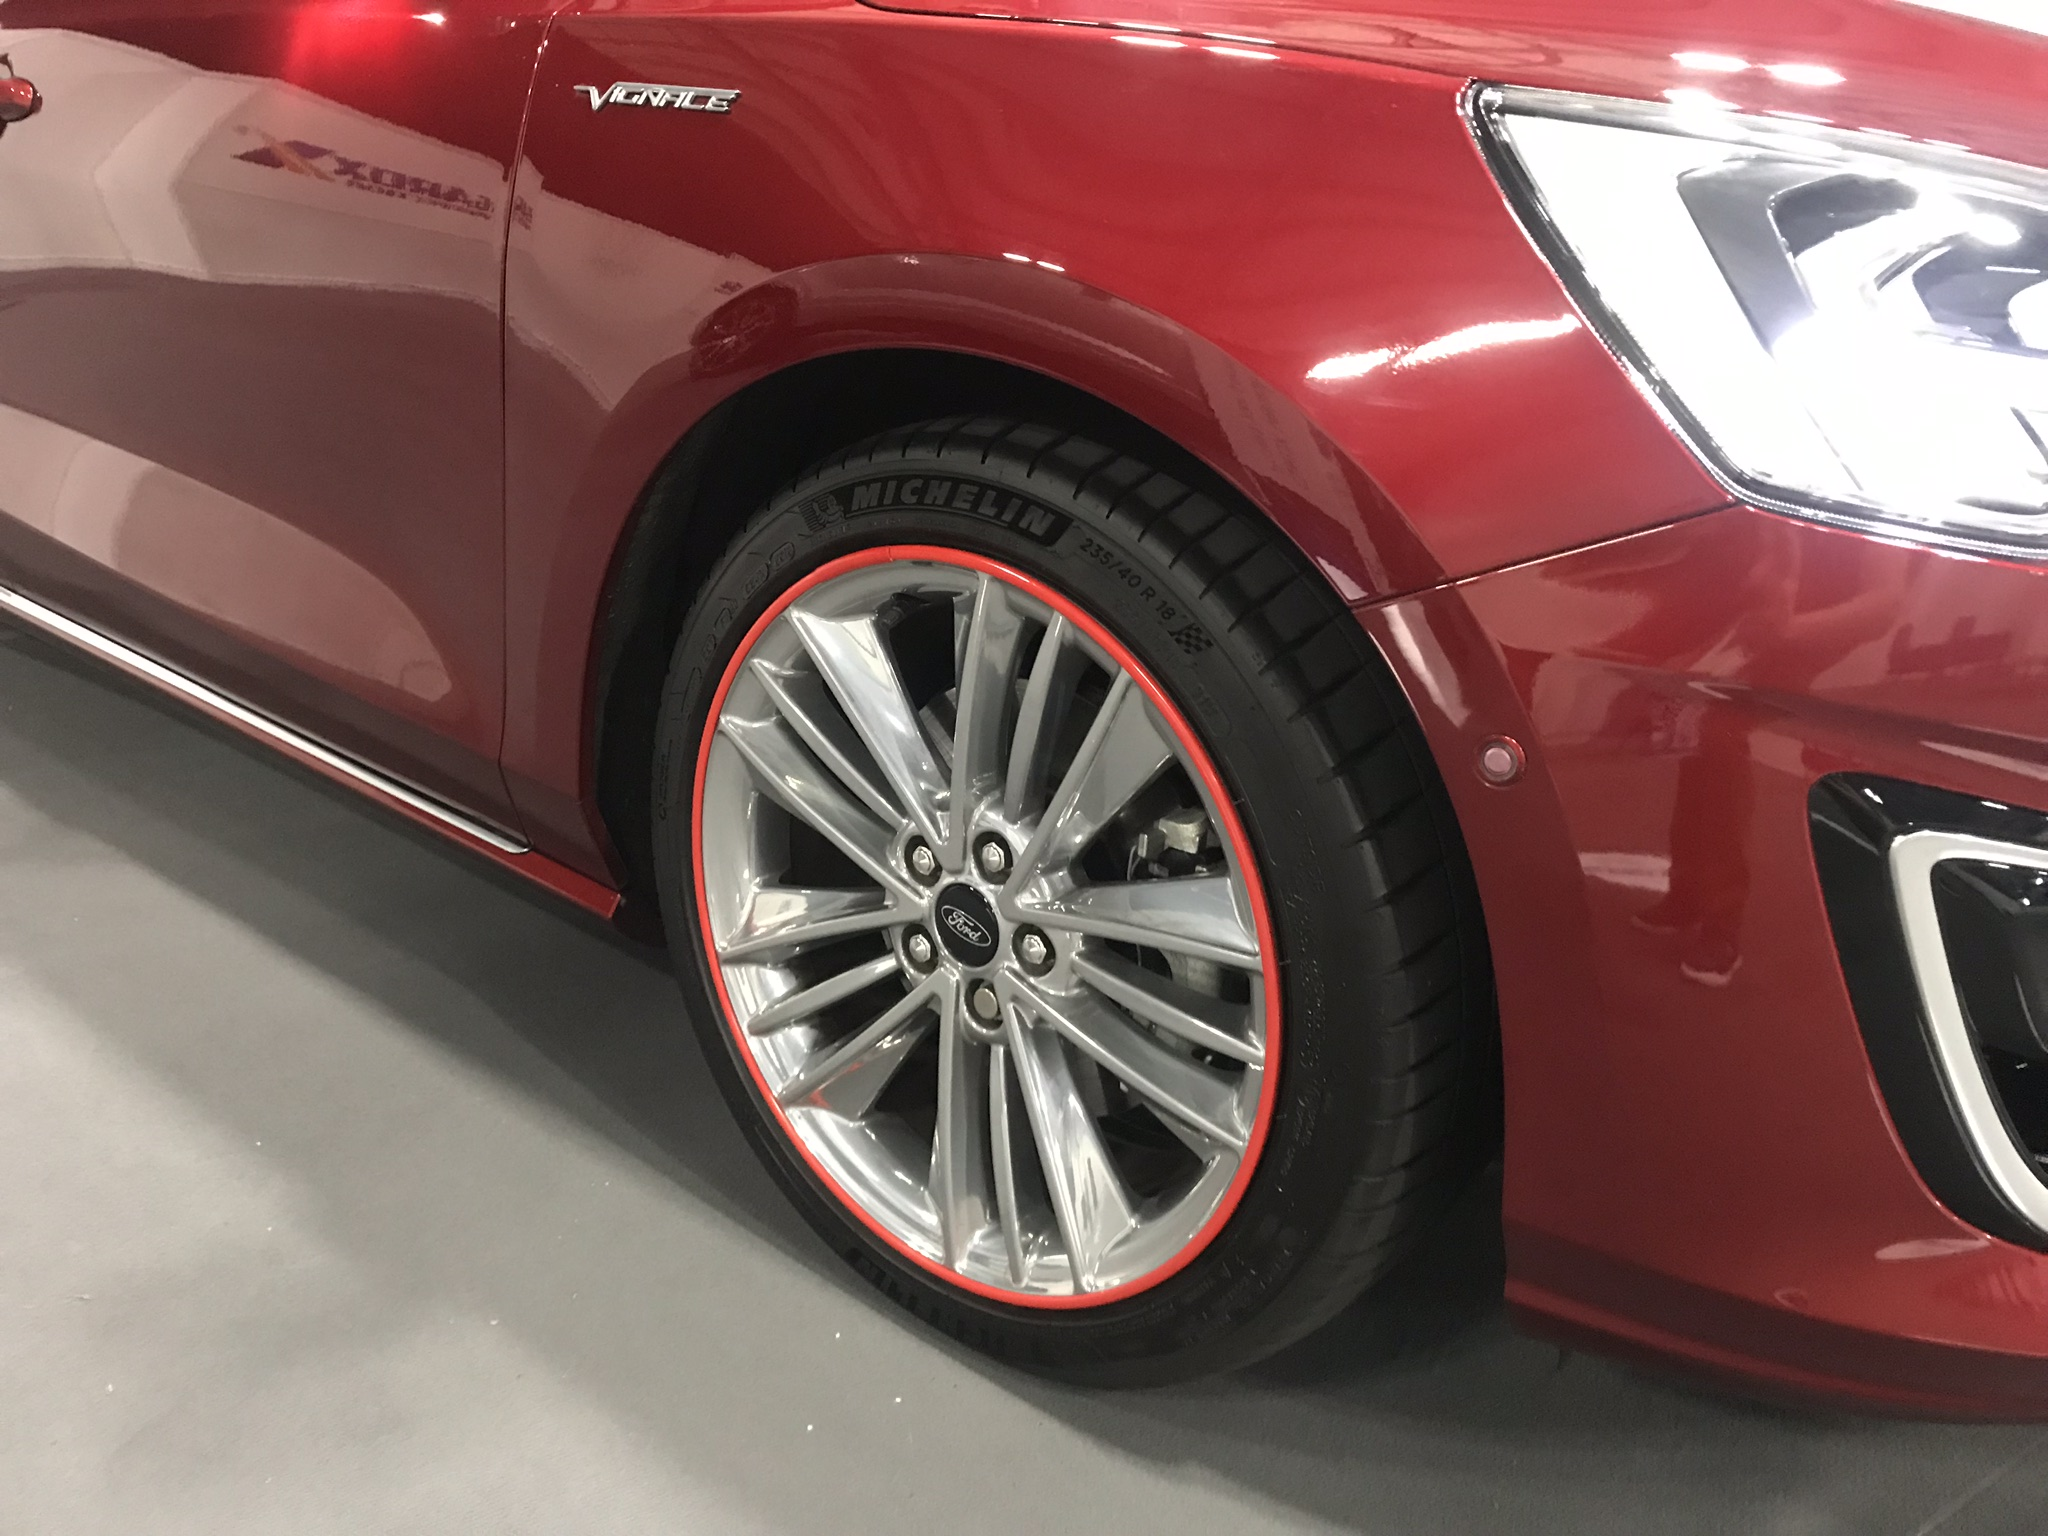 New alloy protectors help to keep the gleaming wheels protected